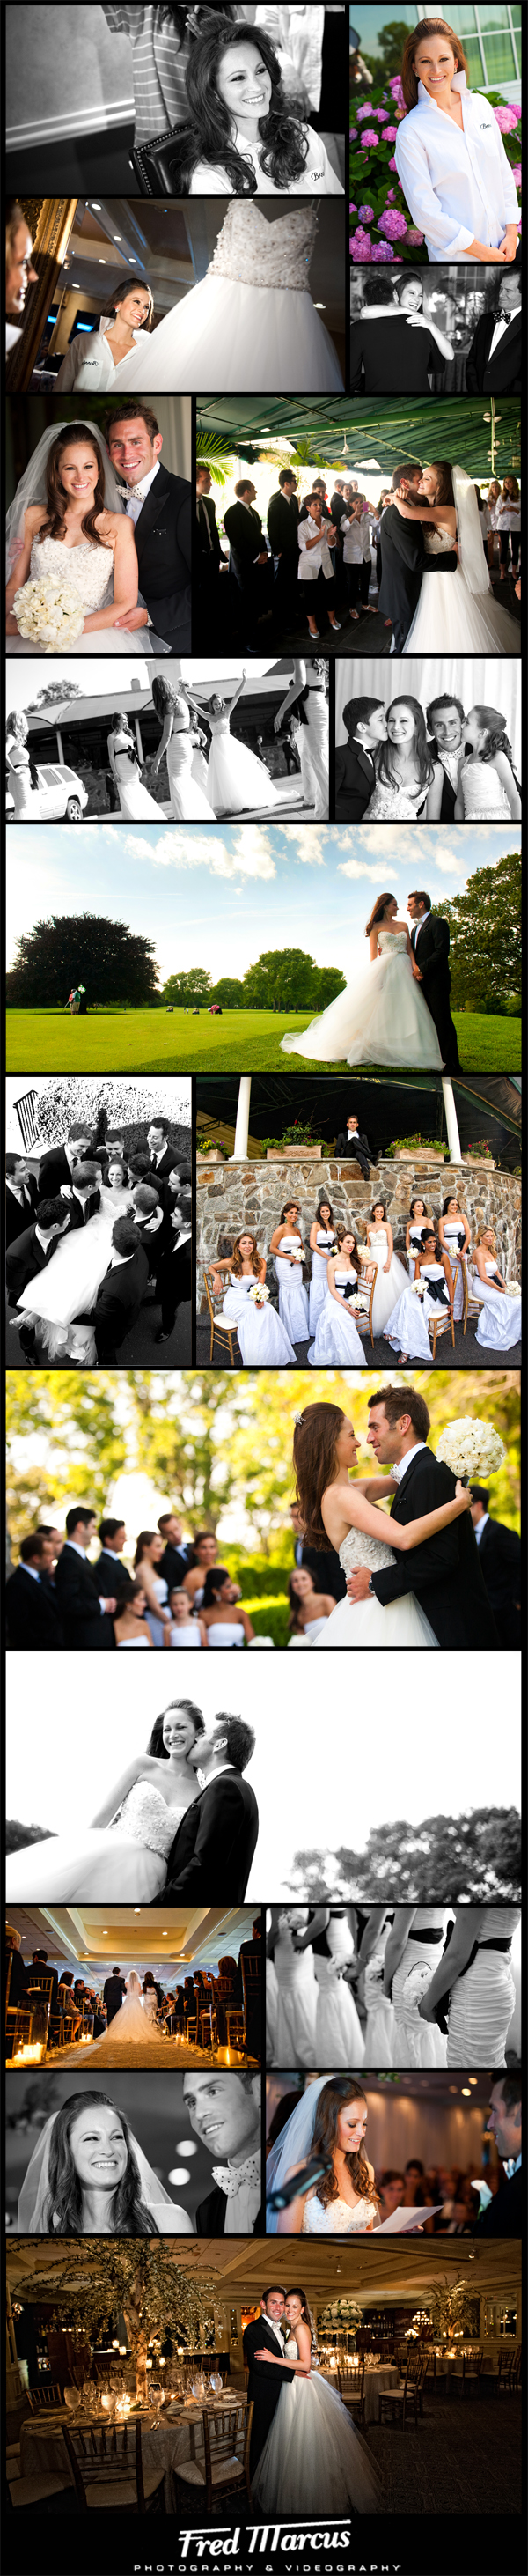 A Wedding at Fresh Meadow Country Club